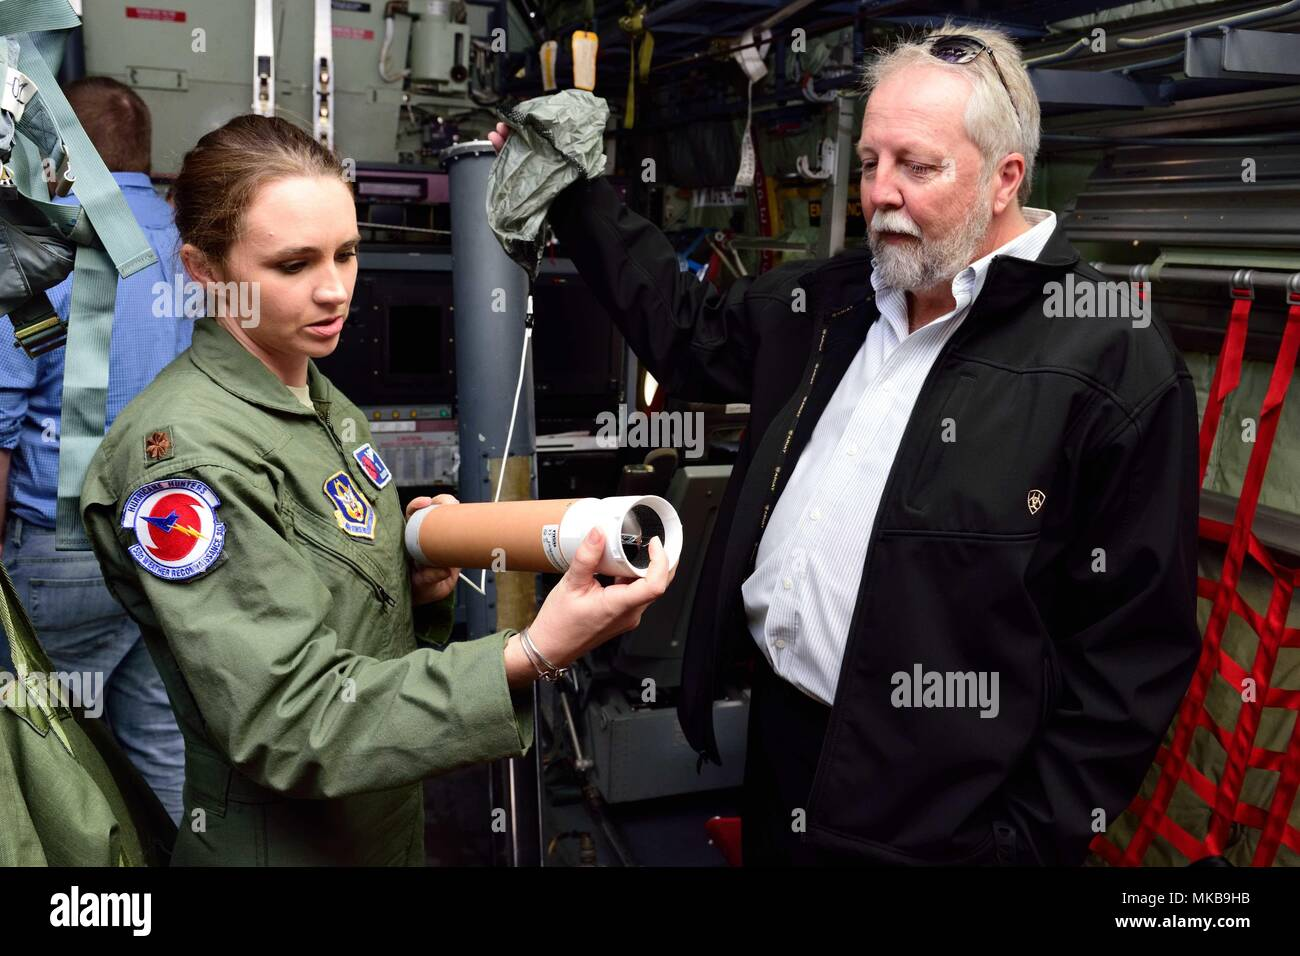 """Maj. Ashley Lundry, 53rd Weather Reconnaissance Squadron aerial reconnaissance weather officer and chief scientific officer, shows a weather data-gathering instrument called a dropsonde to Dr. Fred """"Marty"""" Ralph, Researcher and Director for the Center of Western Weather and Water Extremes, Scripps Institute of Oceanography, Nov. 29, 2017, at Brown Field Airport, San Diego, California. Hurricane Hunters met with Ralph and other Scripps scientists that day to discuss plans for participating in atmospheric river reconnaissance missions in early 2018. (U.S. Air Force photo by Tech. Sgt. Ryan Labad - Stock Image"""